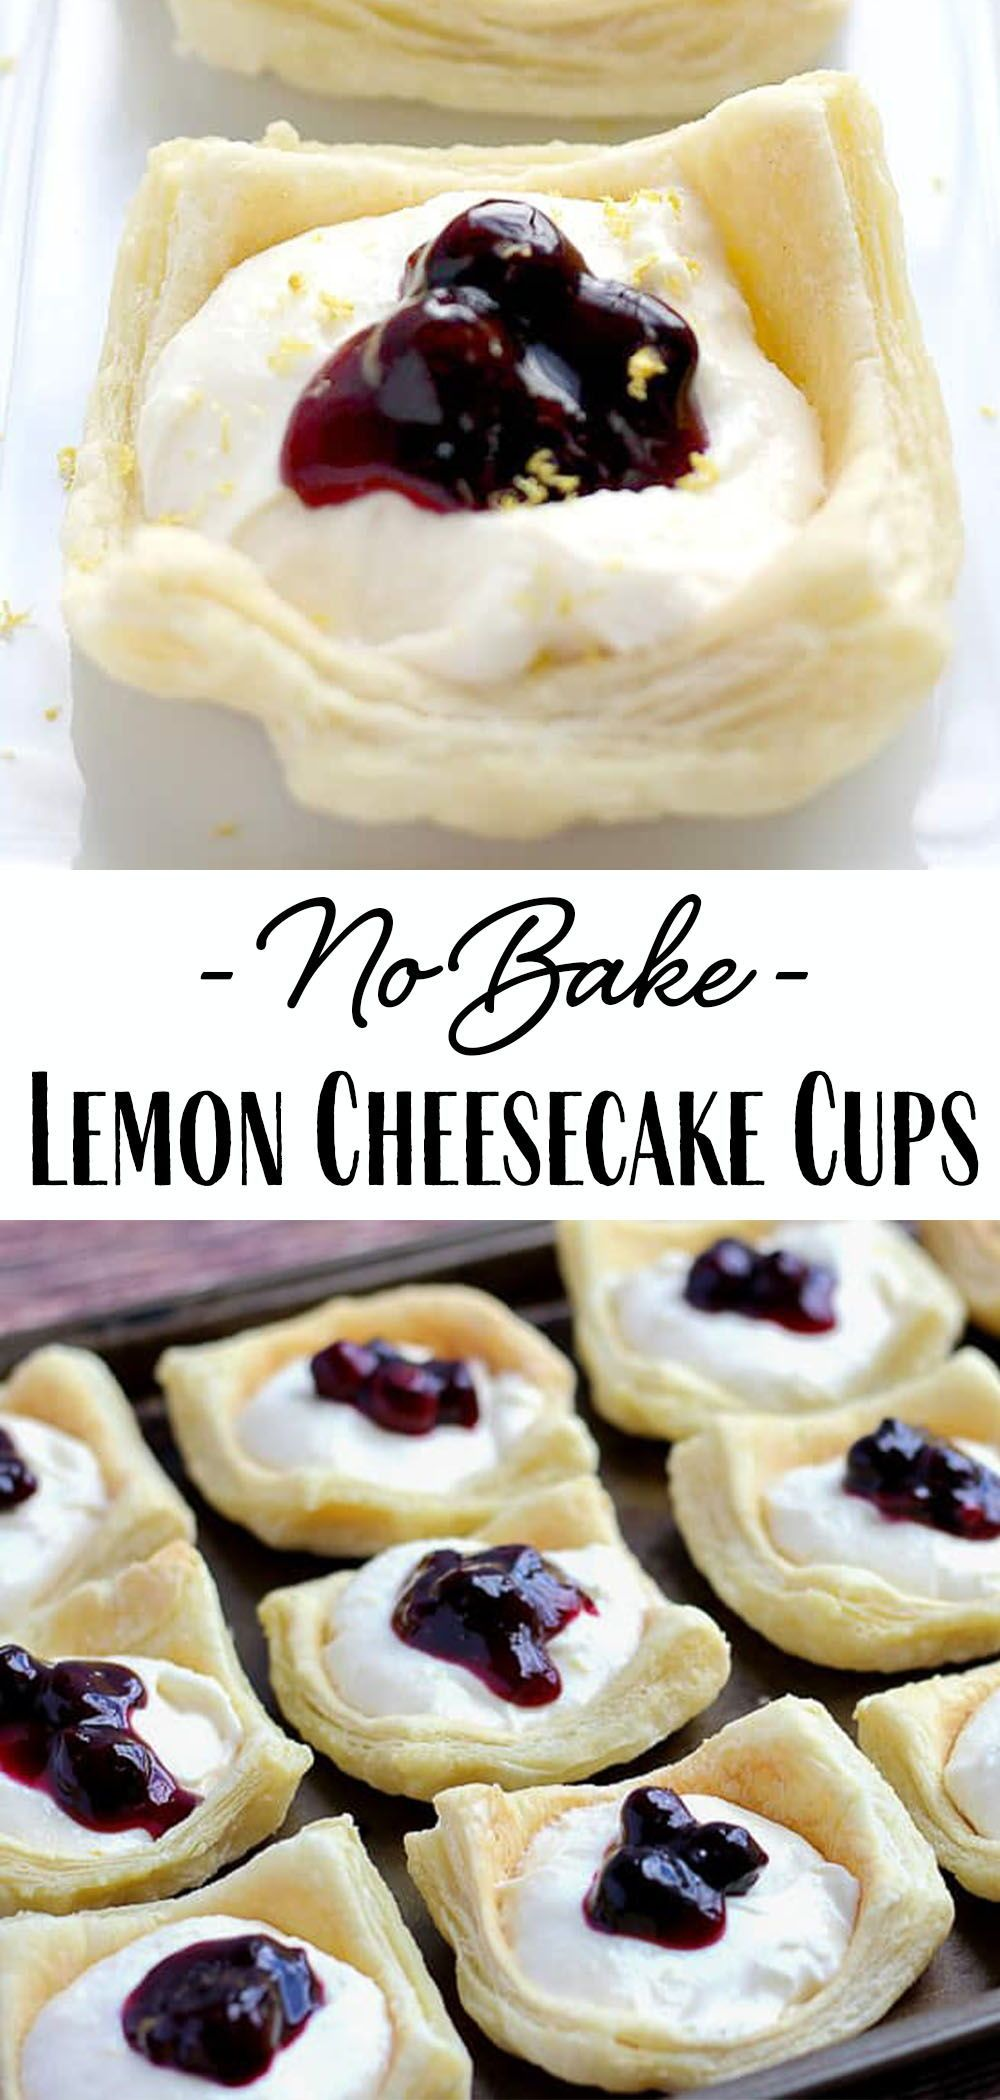 No-Bake Lemon Cheesecake Cups with Blueberry Sauce